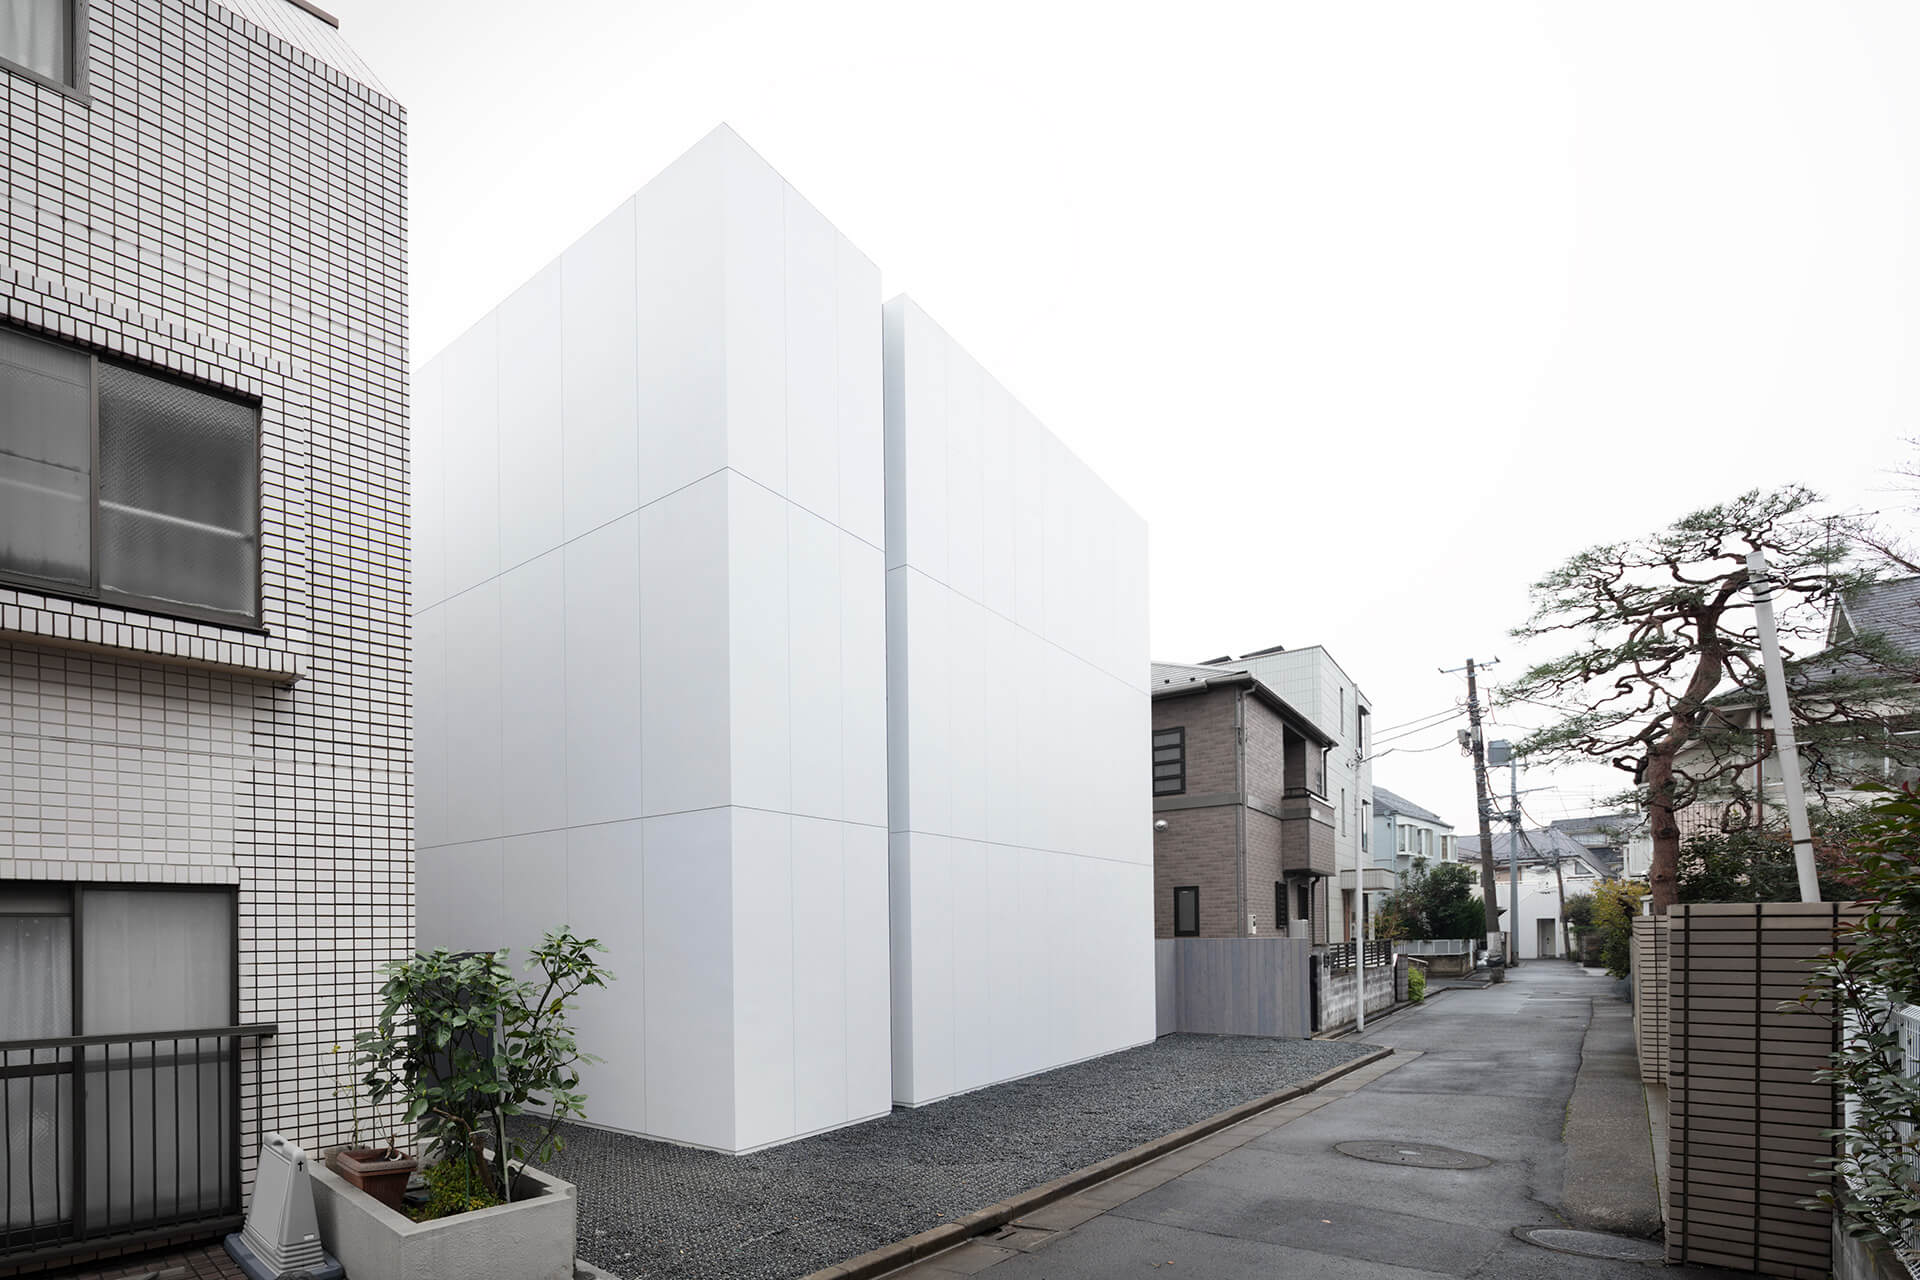 The windowless northern facade of the house | Tokyo | Nendo | STIRworld